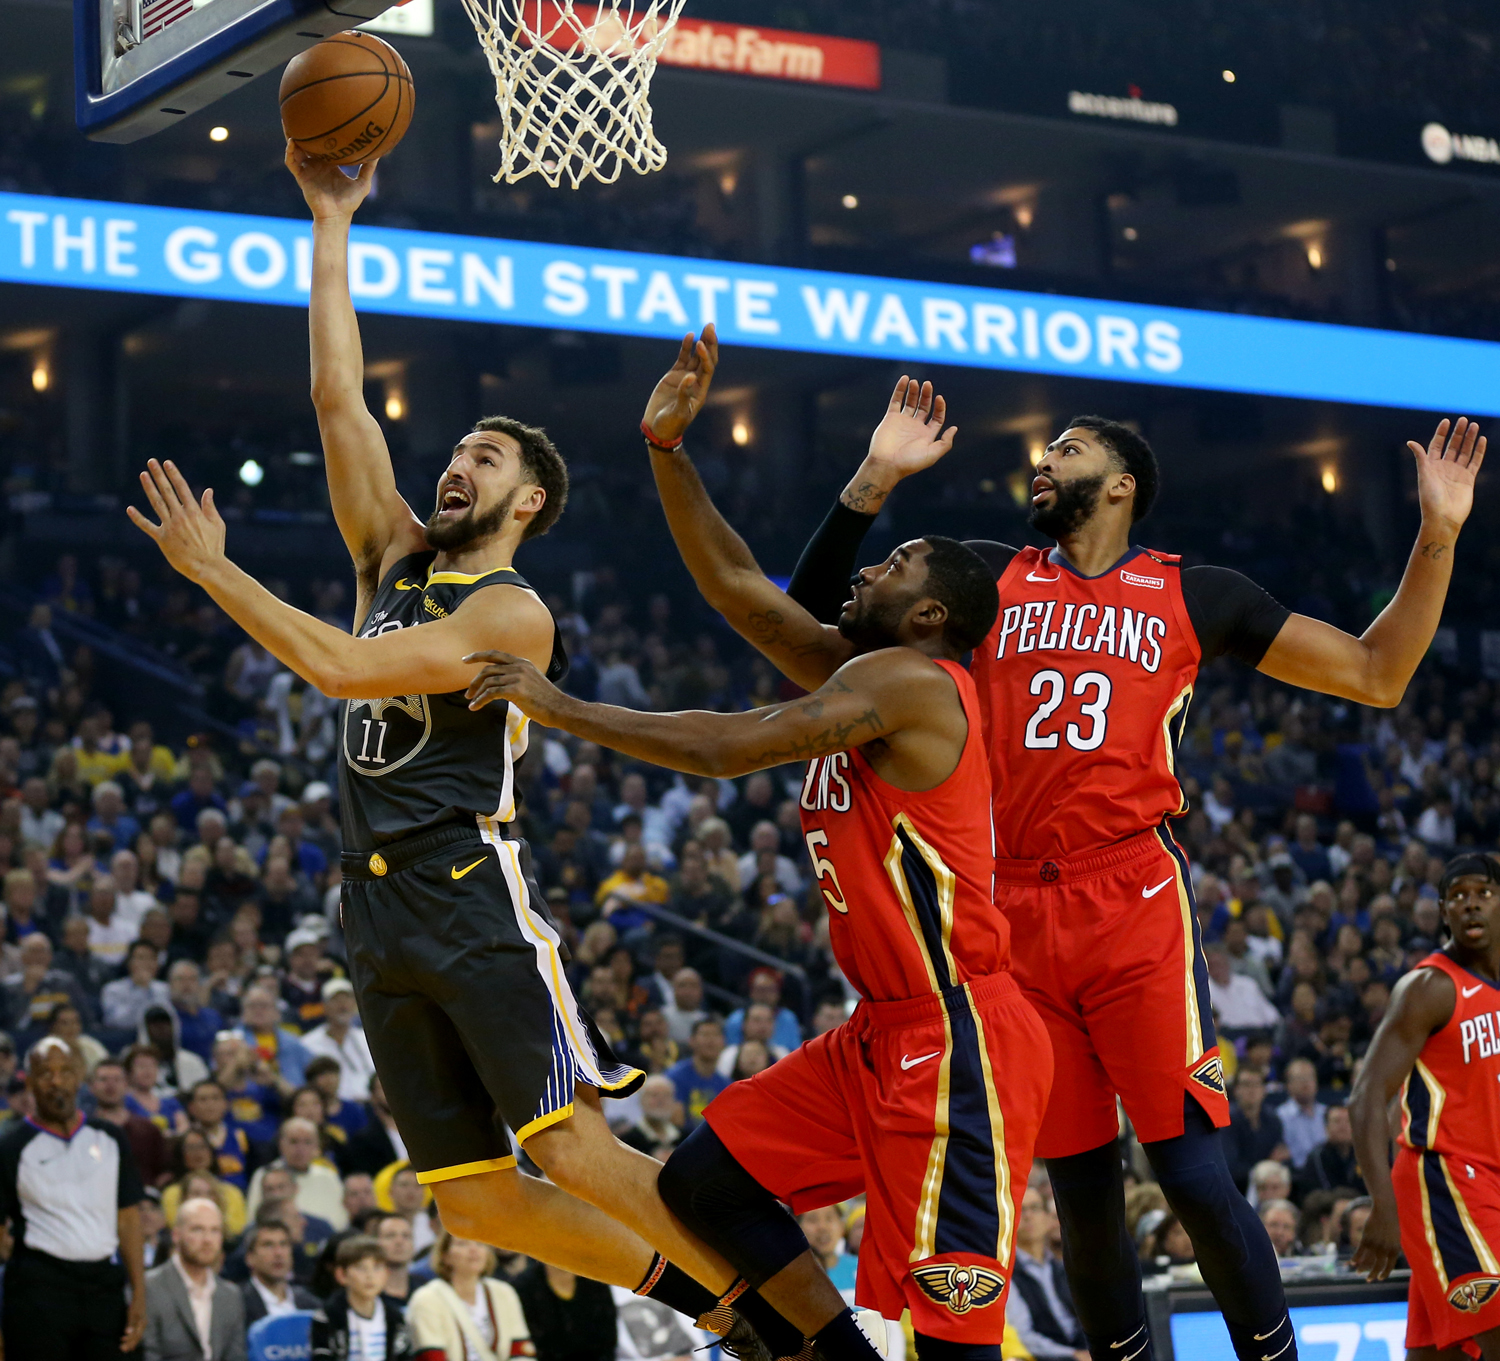 Golden State Warriors' Klay Thompson (11) drives to the hoop against New Orleans Pelicans' E'Twaun Moore (55) and Anthony Davis (23) in the first quarter during their NBA game at Oracle Arena in Oakland, California, on Wednesday, Oct. 31.